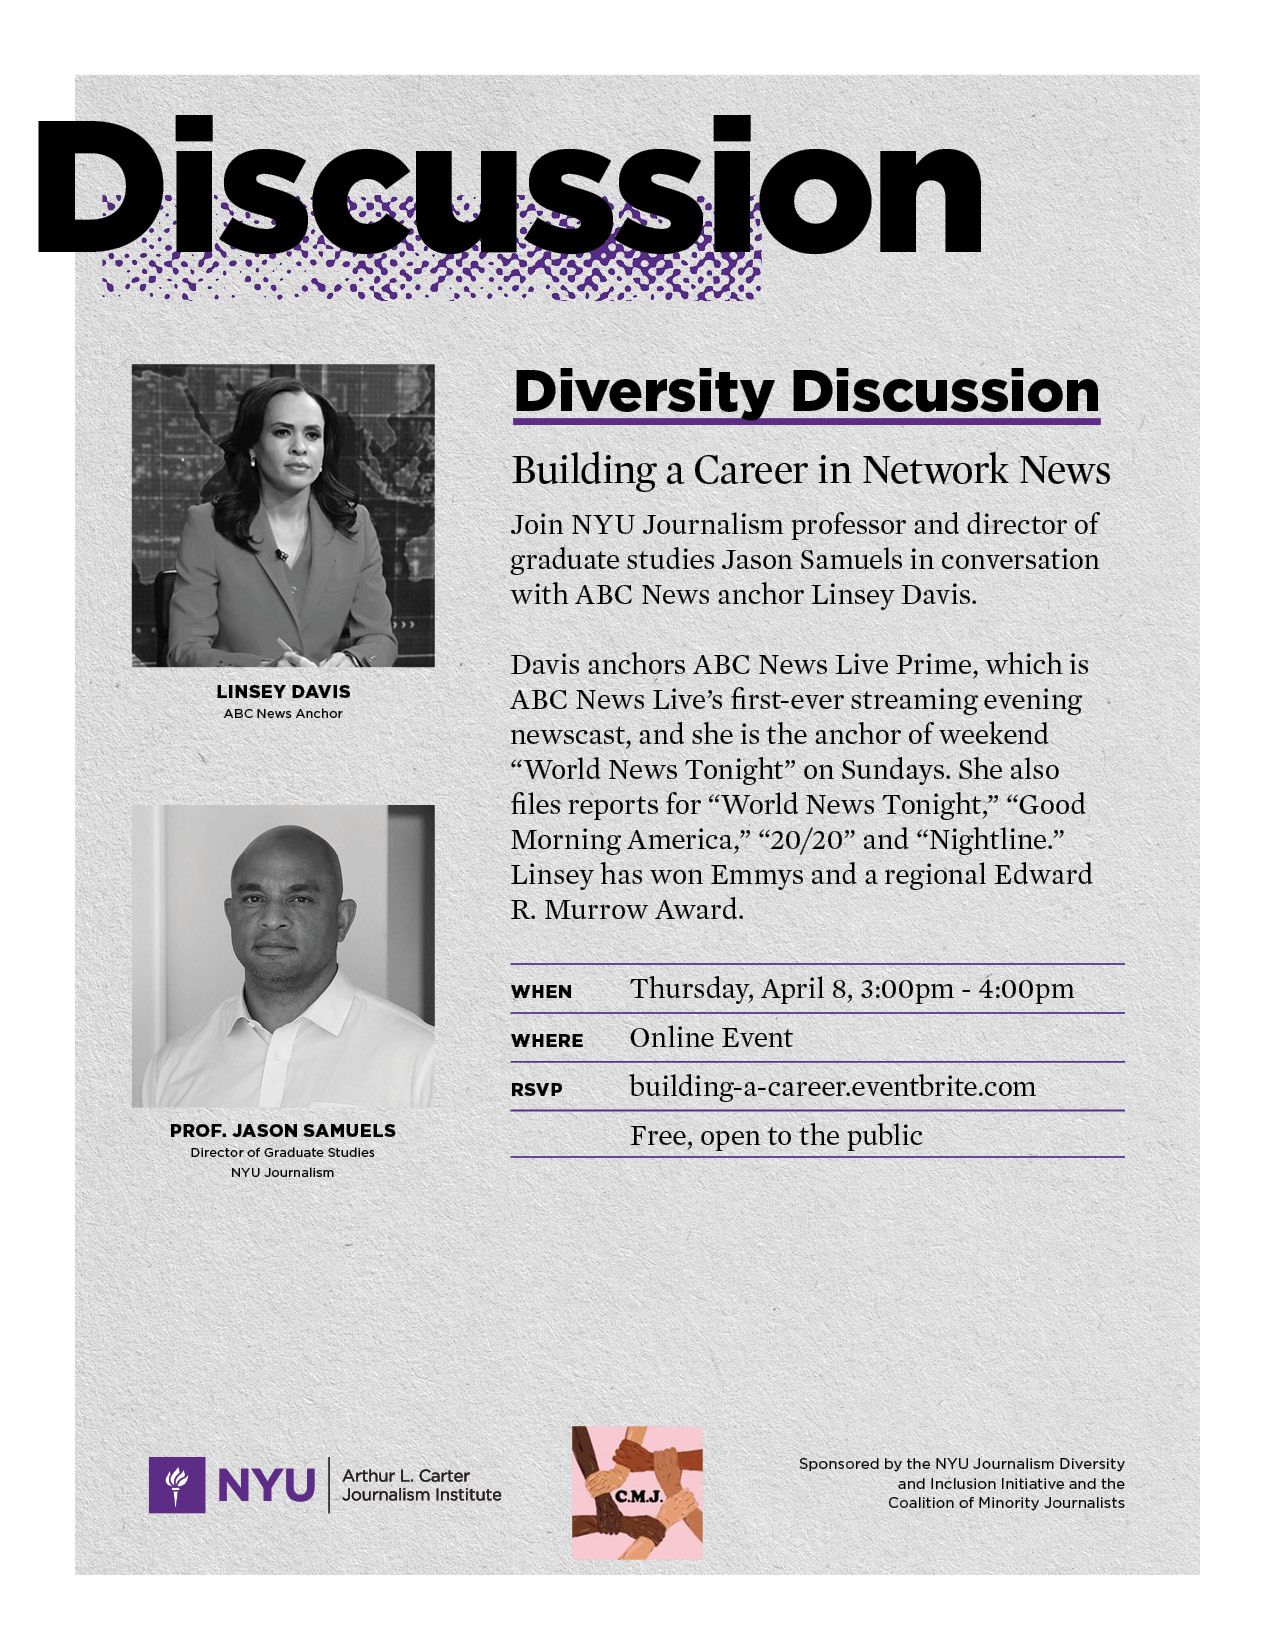 Diversity Discussion: Building a Career in Network News - Event Poster - See event page for details